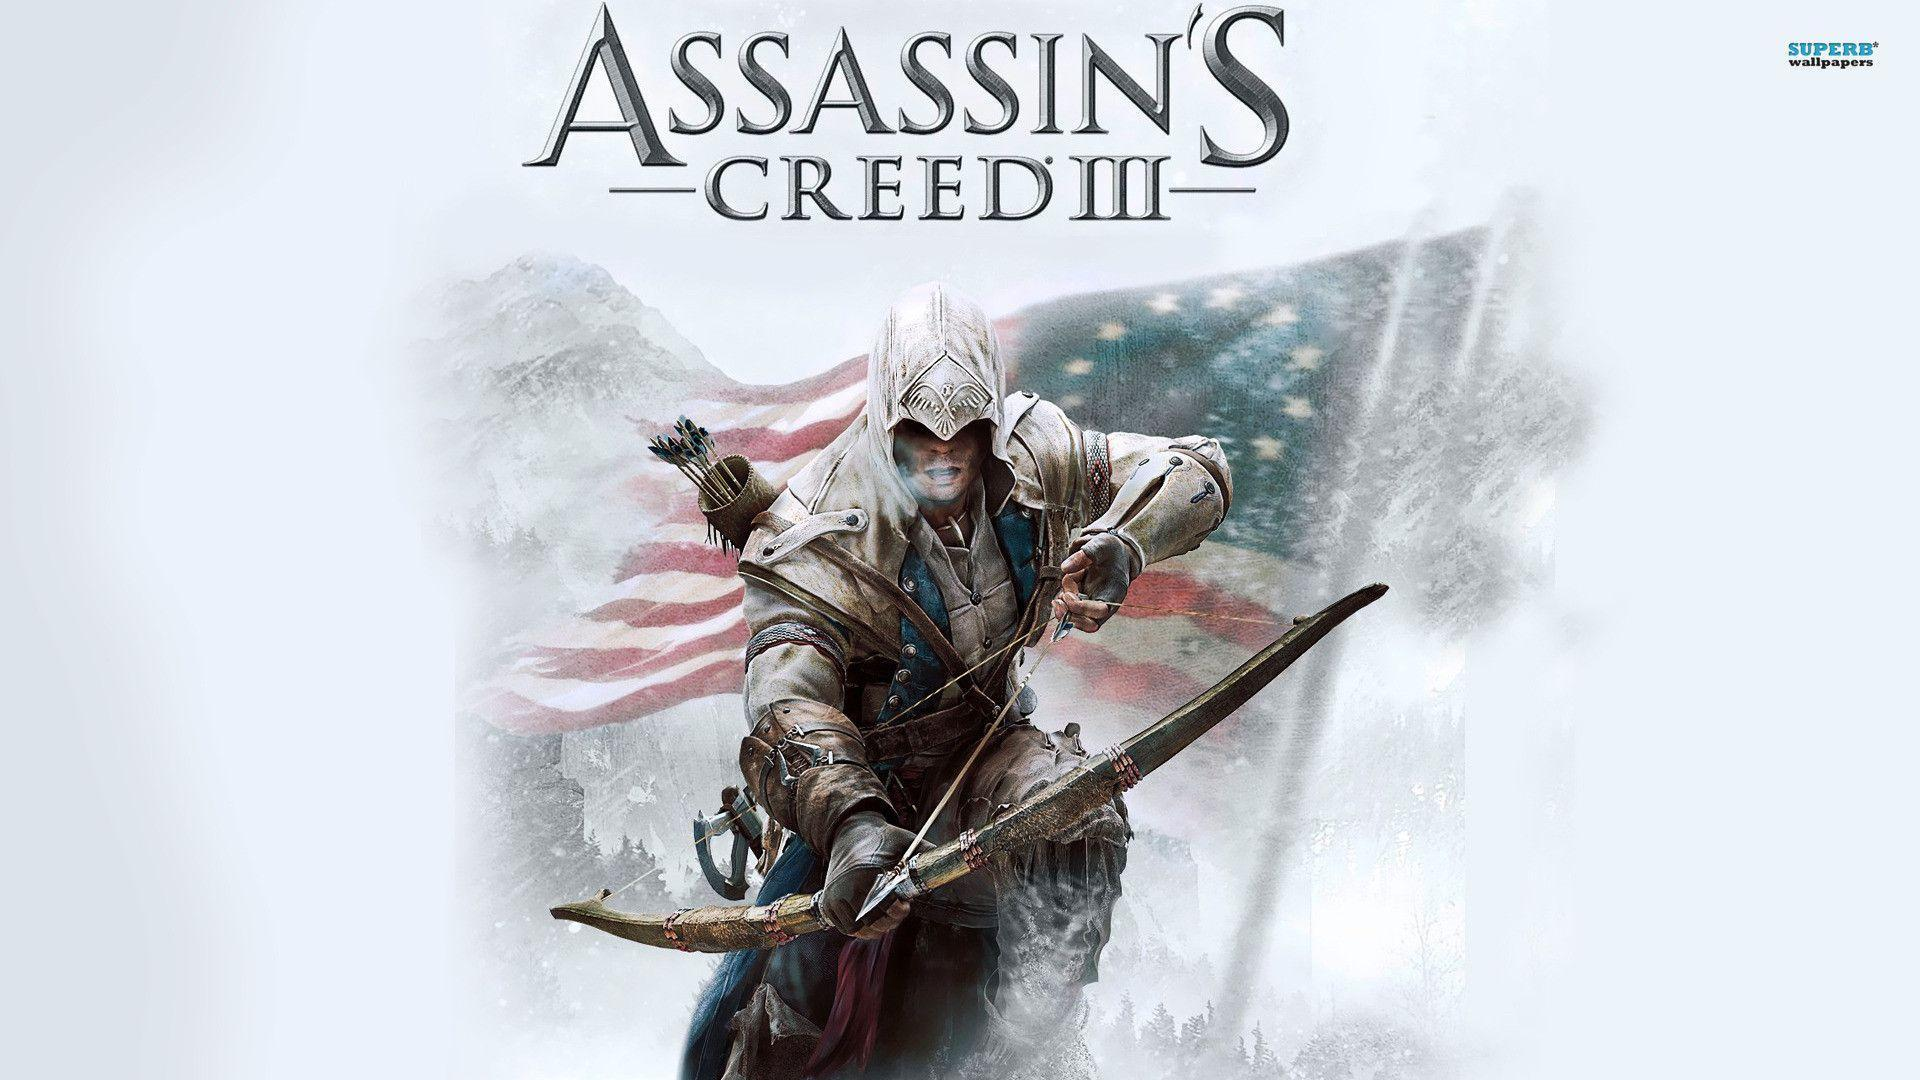 Wallpapers For > Assassins Creed 3 Wallpapers Hd 1920x1080